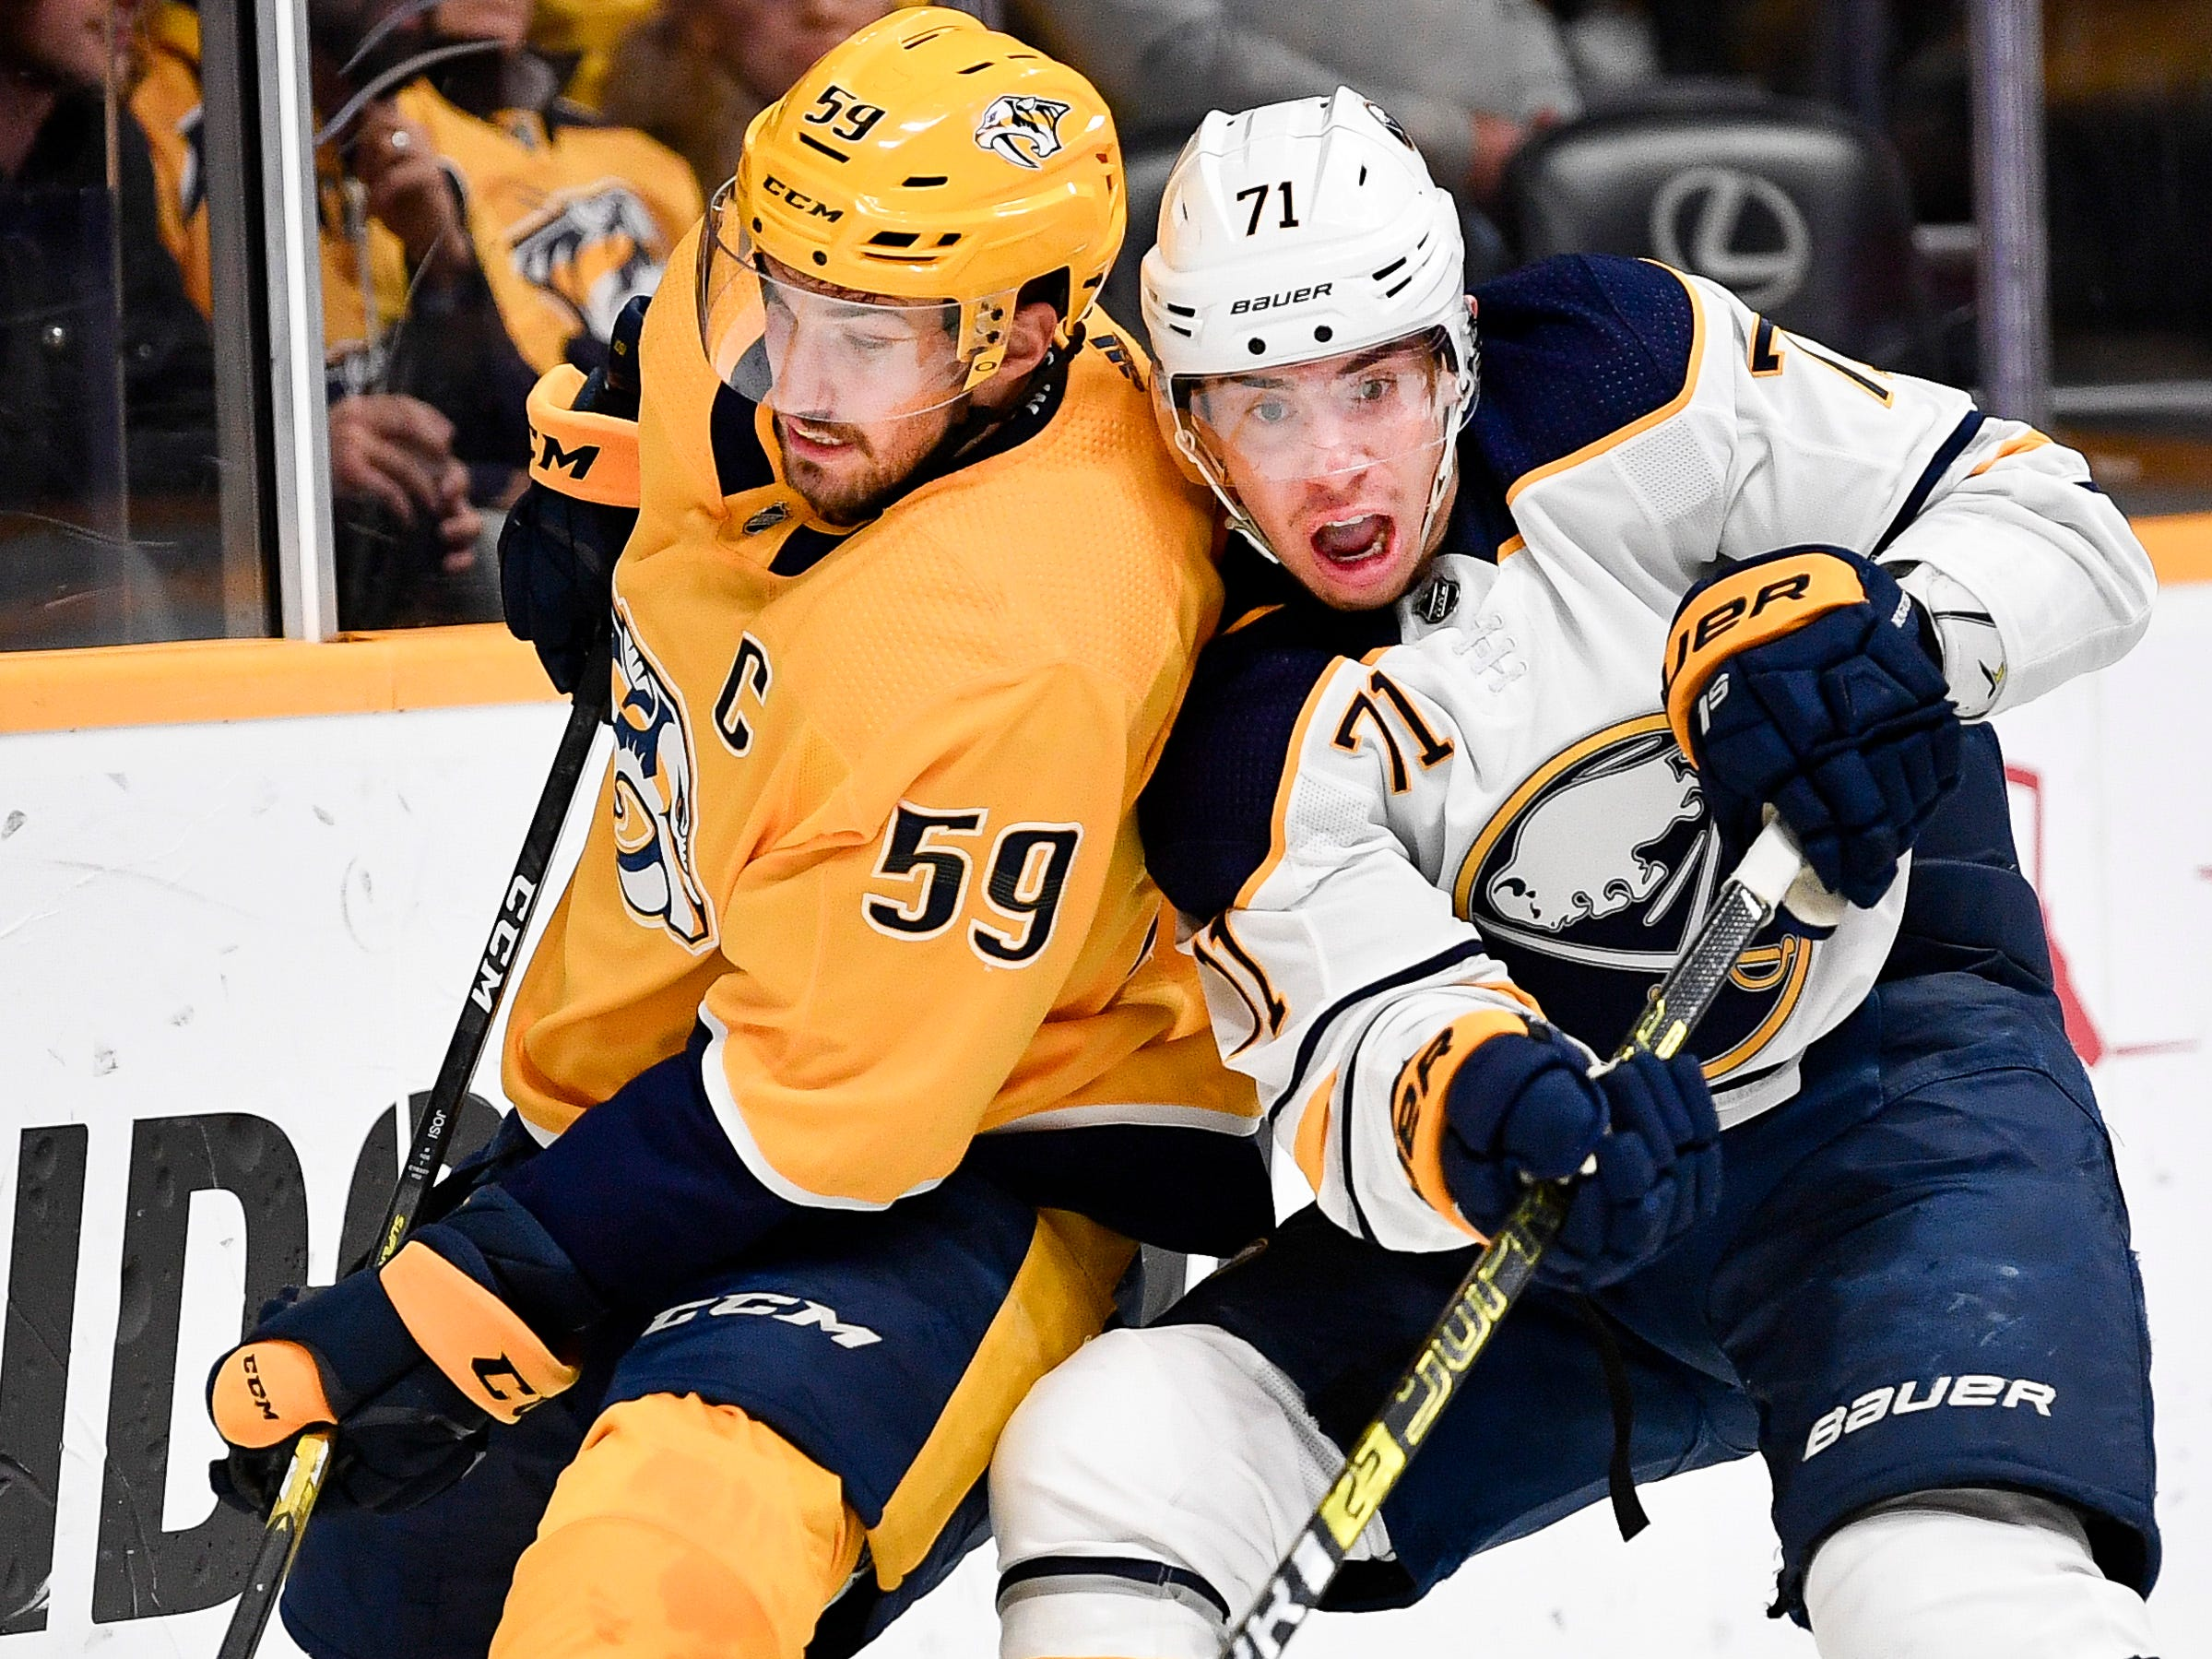 Nashville Predators defenseman Roman Josi (59) battles Buffalo Sabres right wing Tage Thompson (72) during the second period at Bridgestone Arena in Nashville, Tenn., Monday, Dec. 3, 2018.